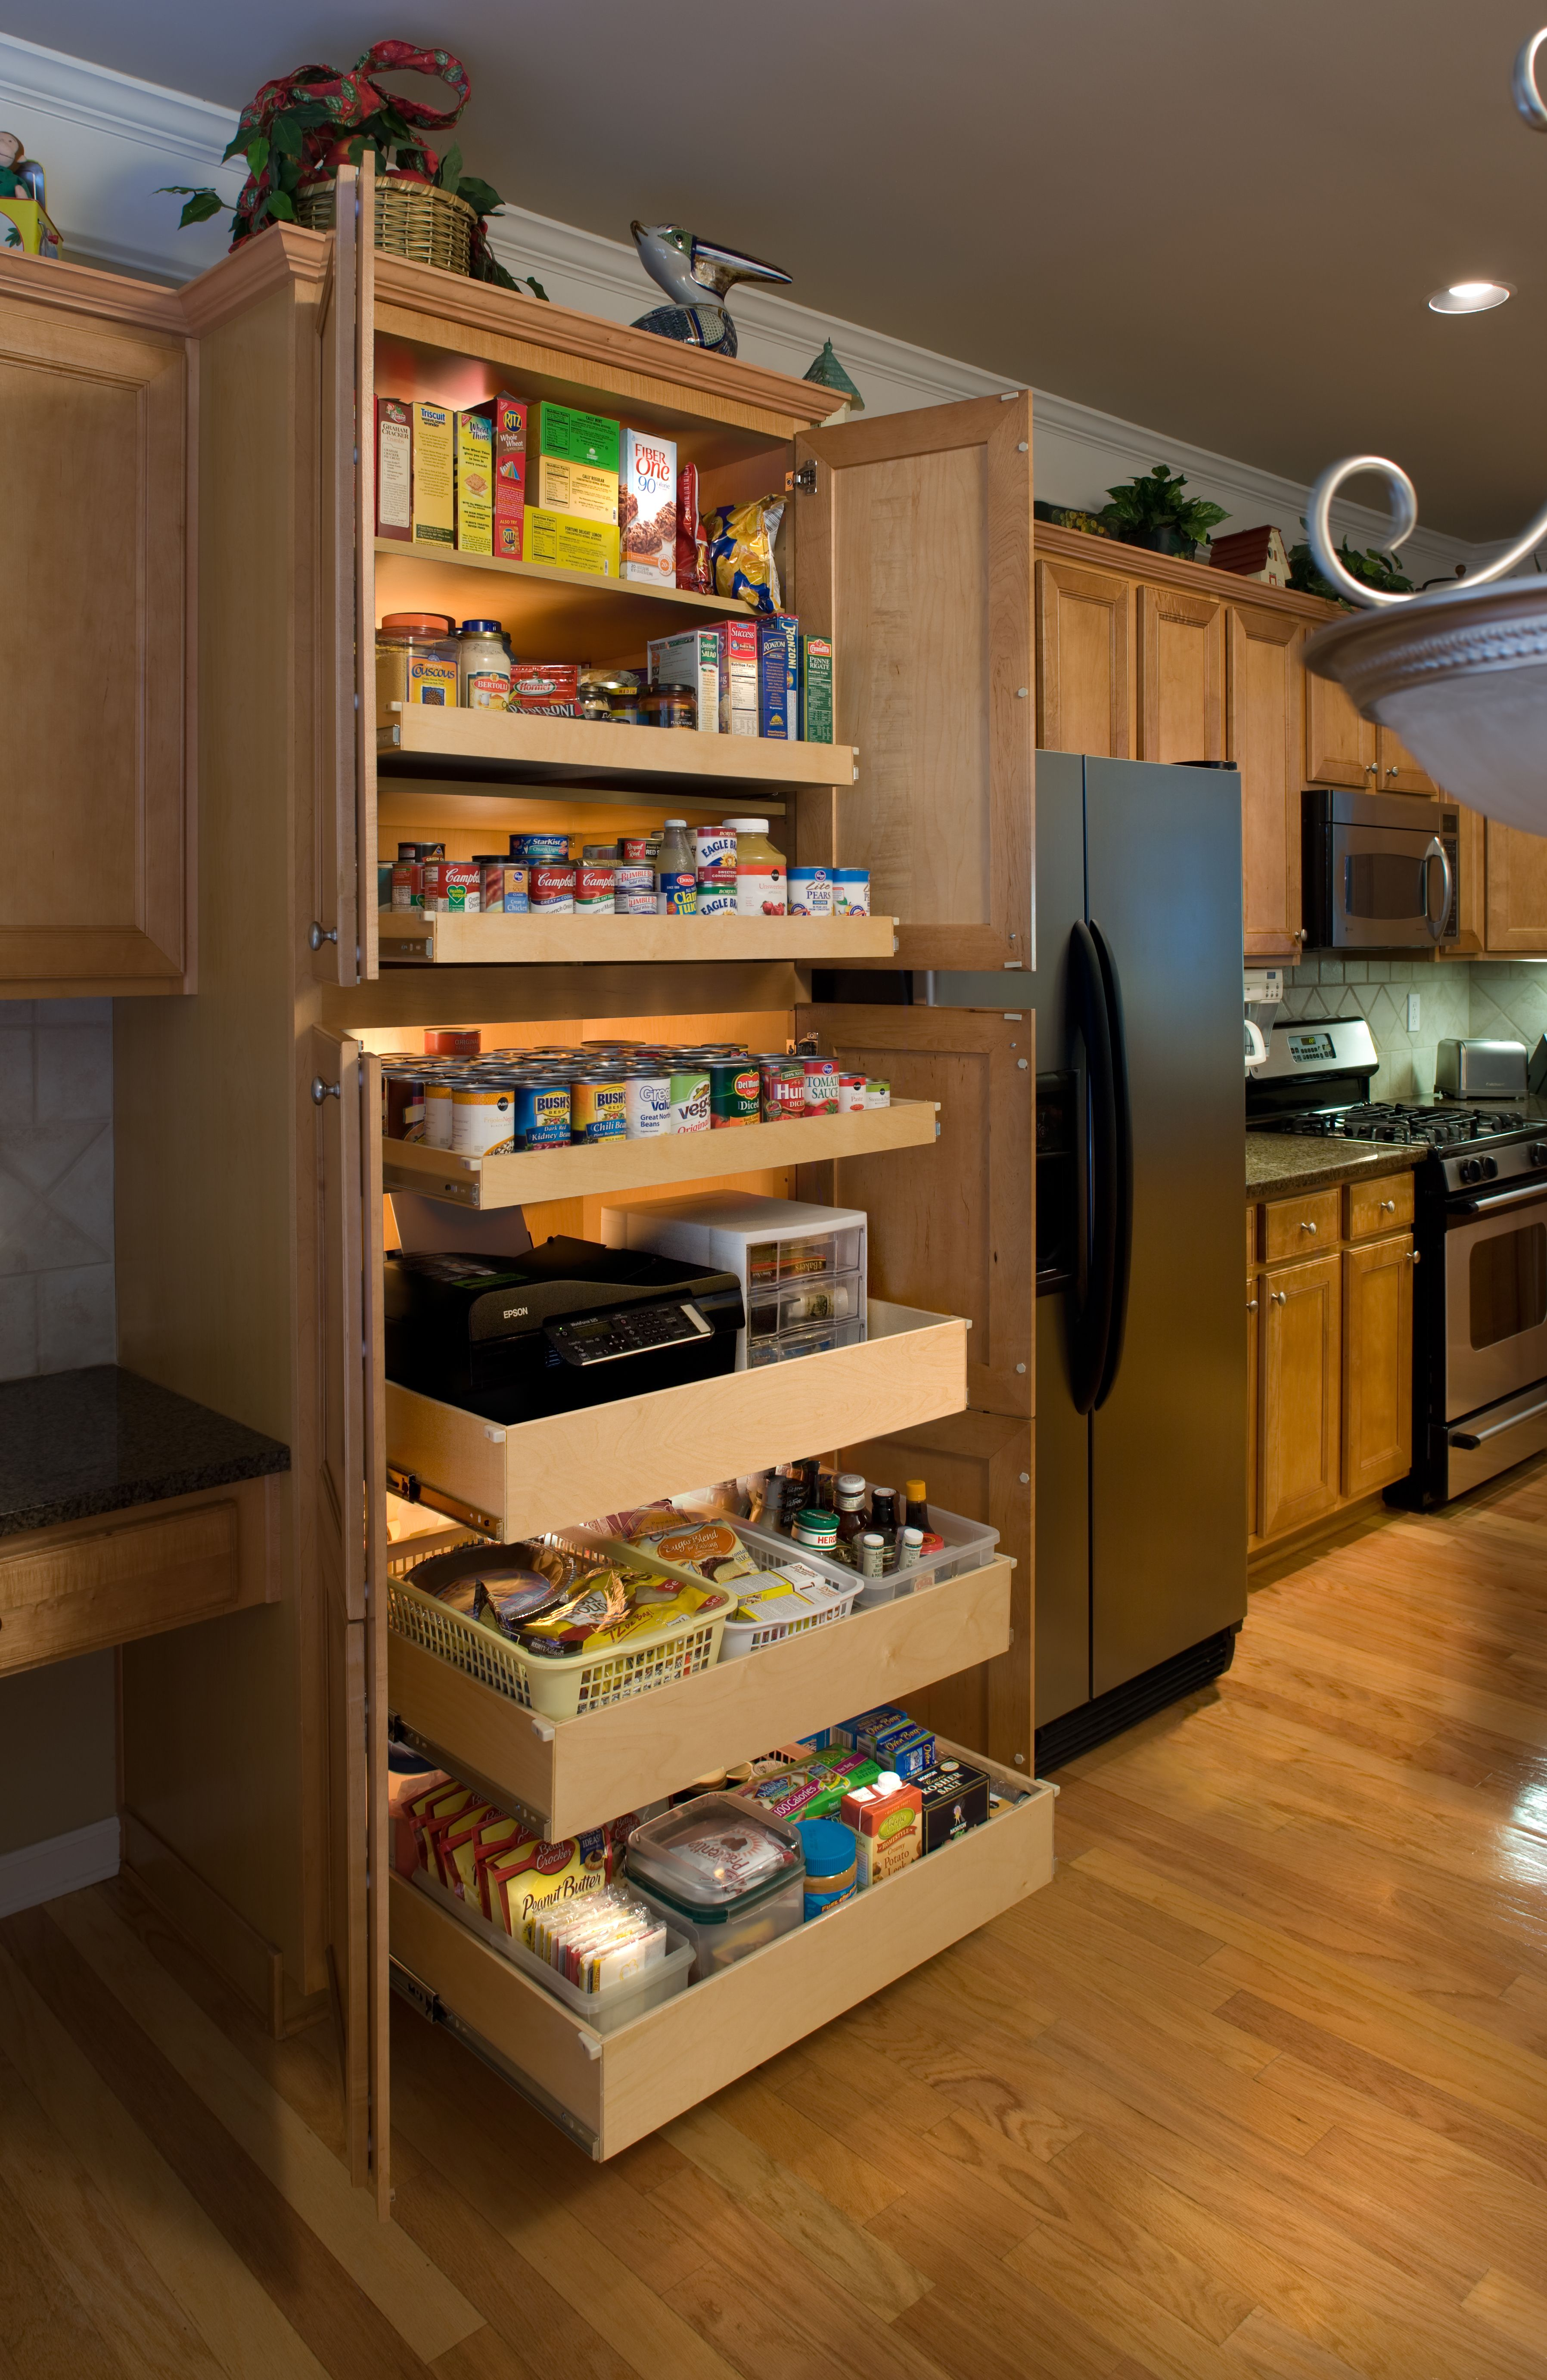 pantry shelving systems slide out pantry shelves from